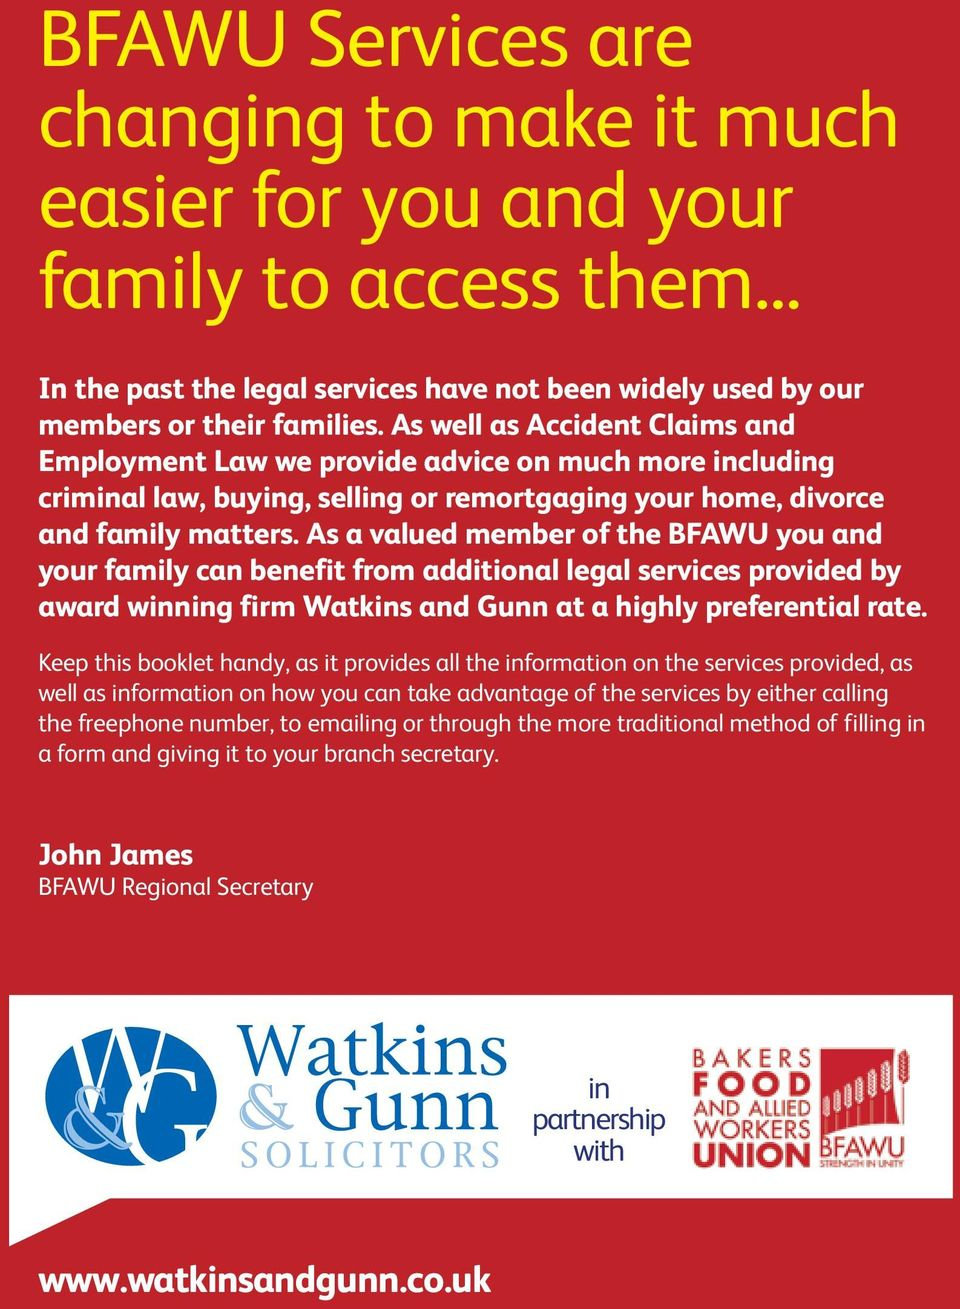 As a valued member of the BFAWU you and your family can benefit from additional legal services provided by award winning firm Watkins and Gunn at a highly preferential rate.